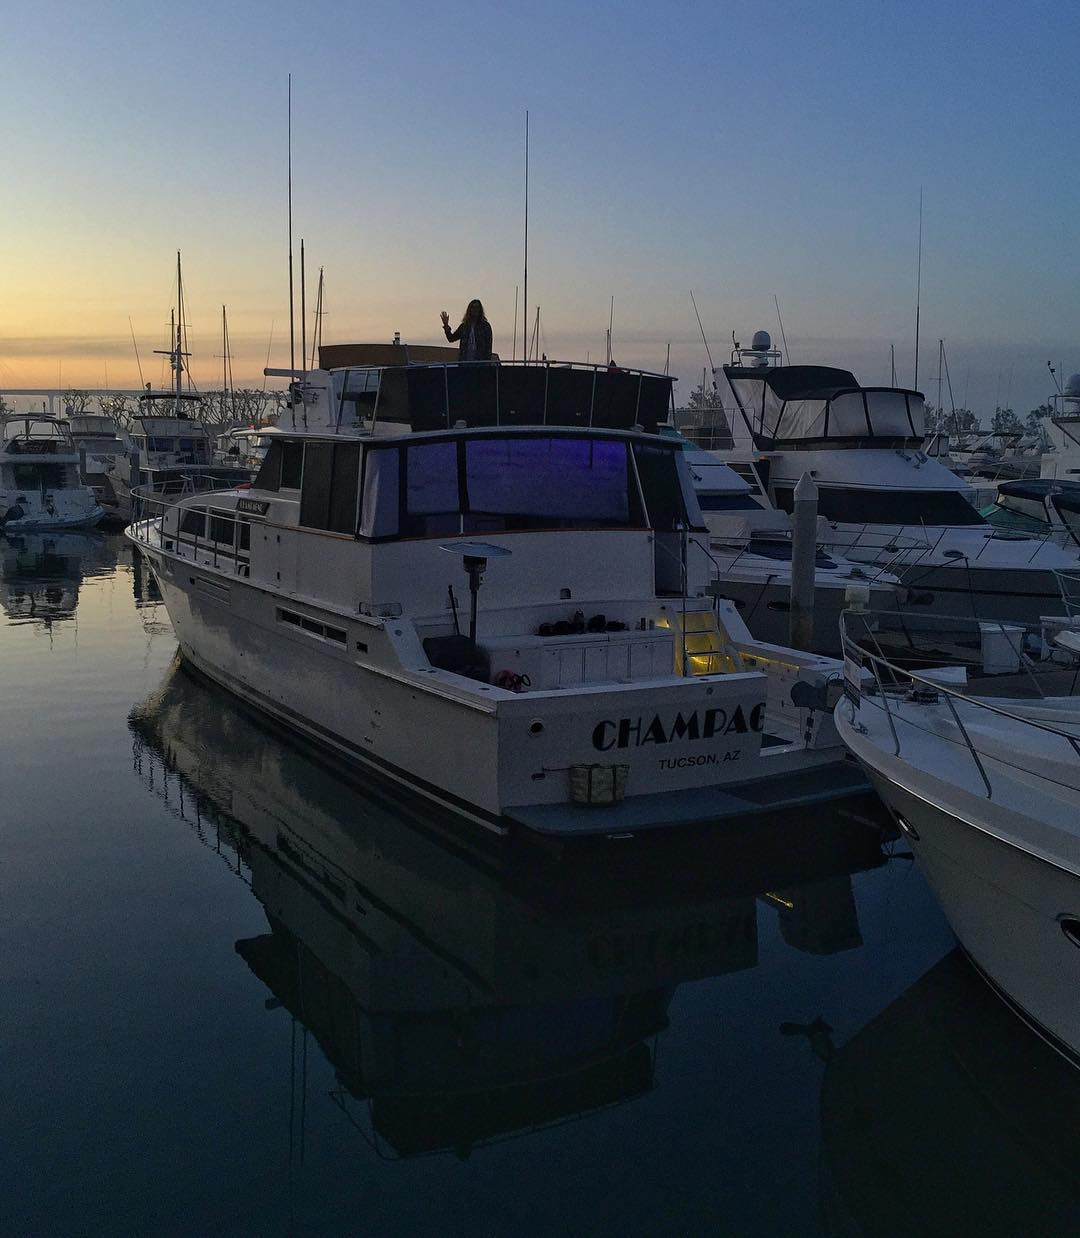 Just said goodbye to my wifey and the floating hotel room we occupied here in the San Diego marina for the past couple of days. Off to the next adventure - which happens to involve have deep white powder. #yachtlife #travellife #powderfiend